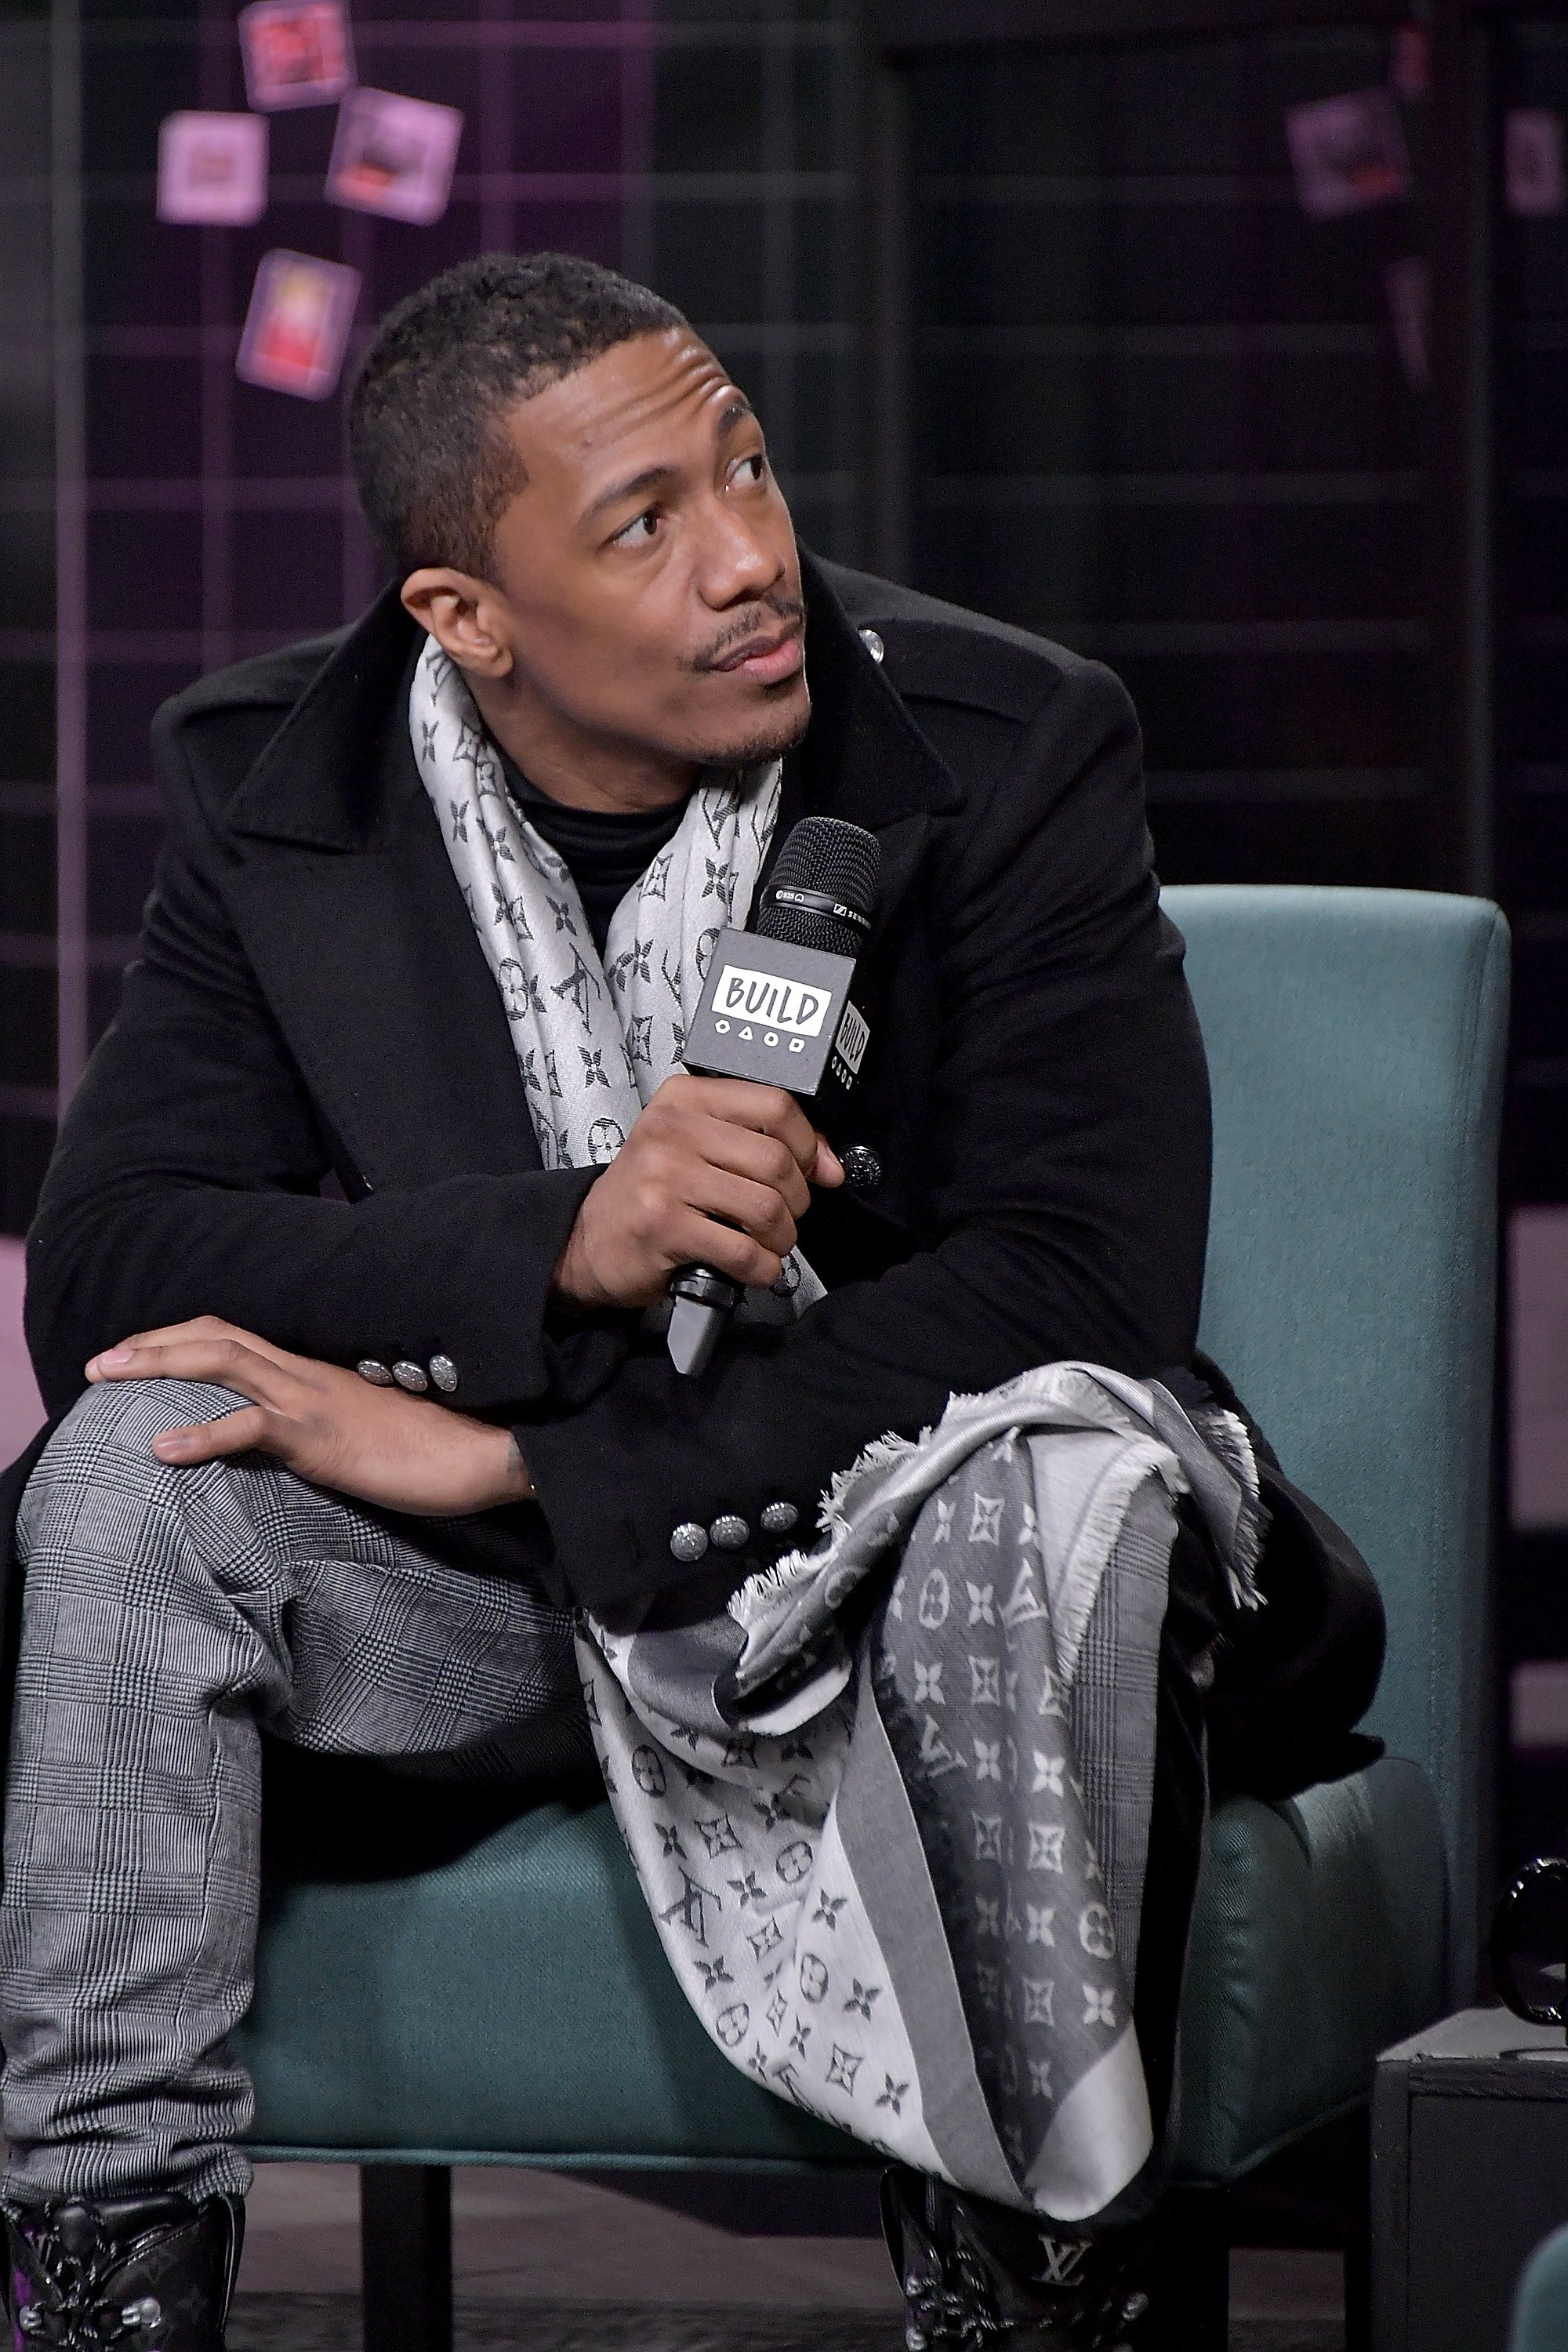 """Nick Cannon at Build Studio to discuss his reality show, """"The Masked Singer"""" on Dec. 11, 2018 in New York City   Image: Getty Images"""